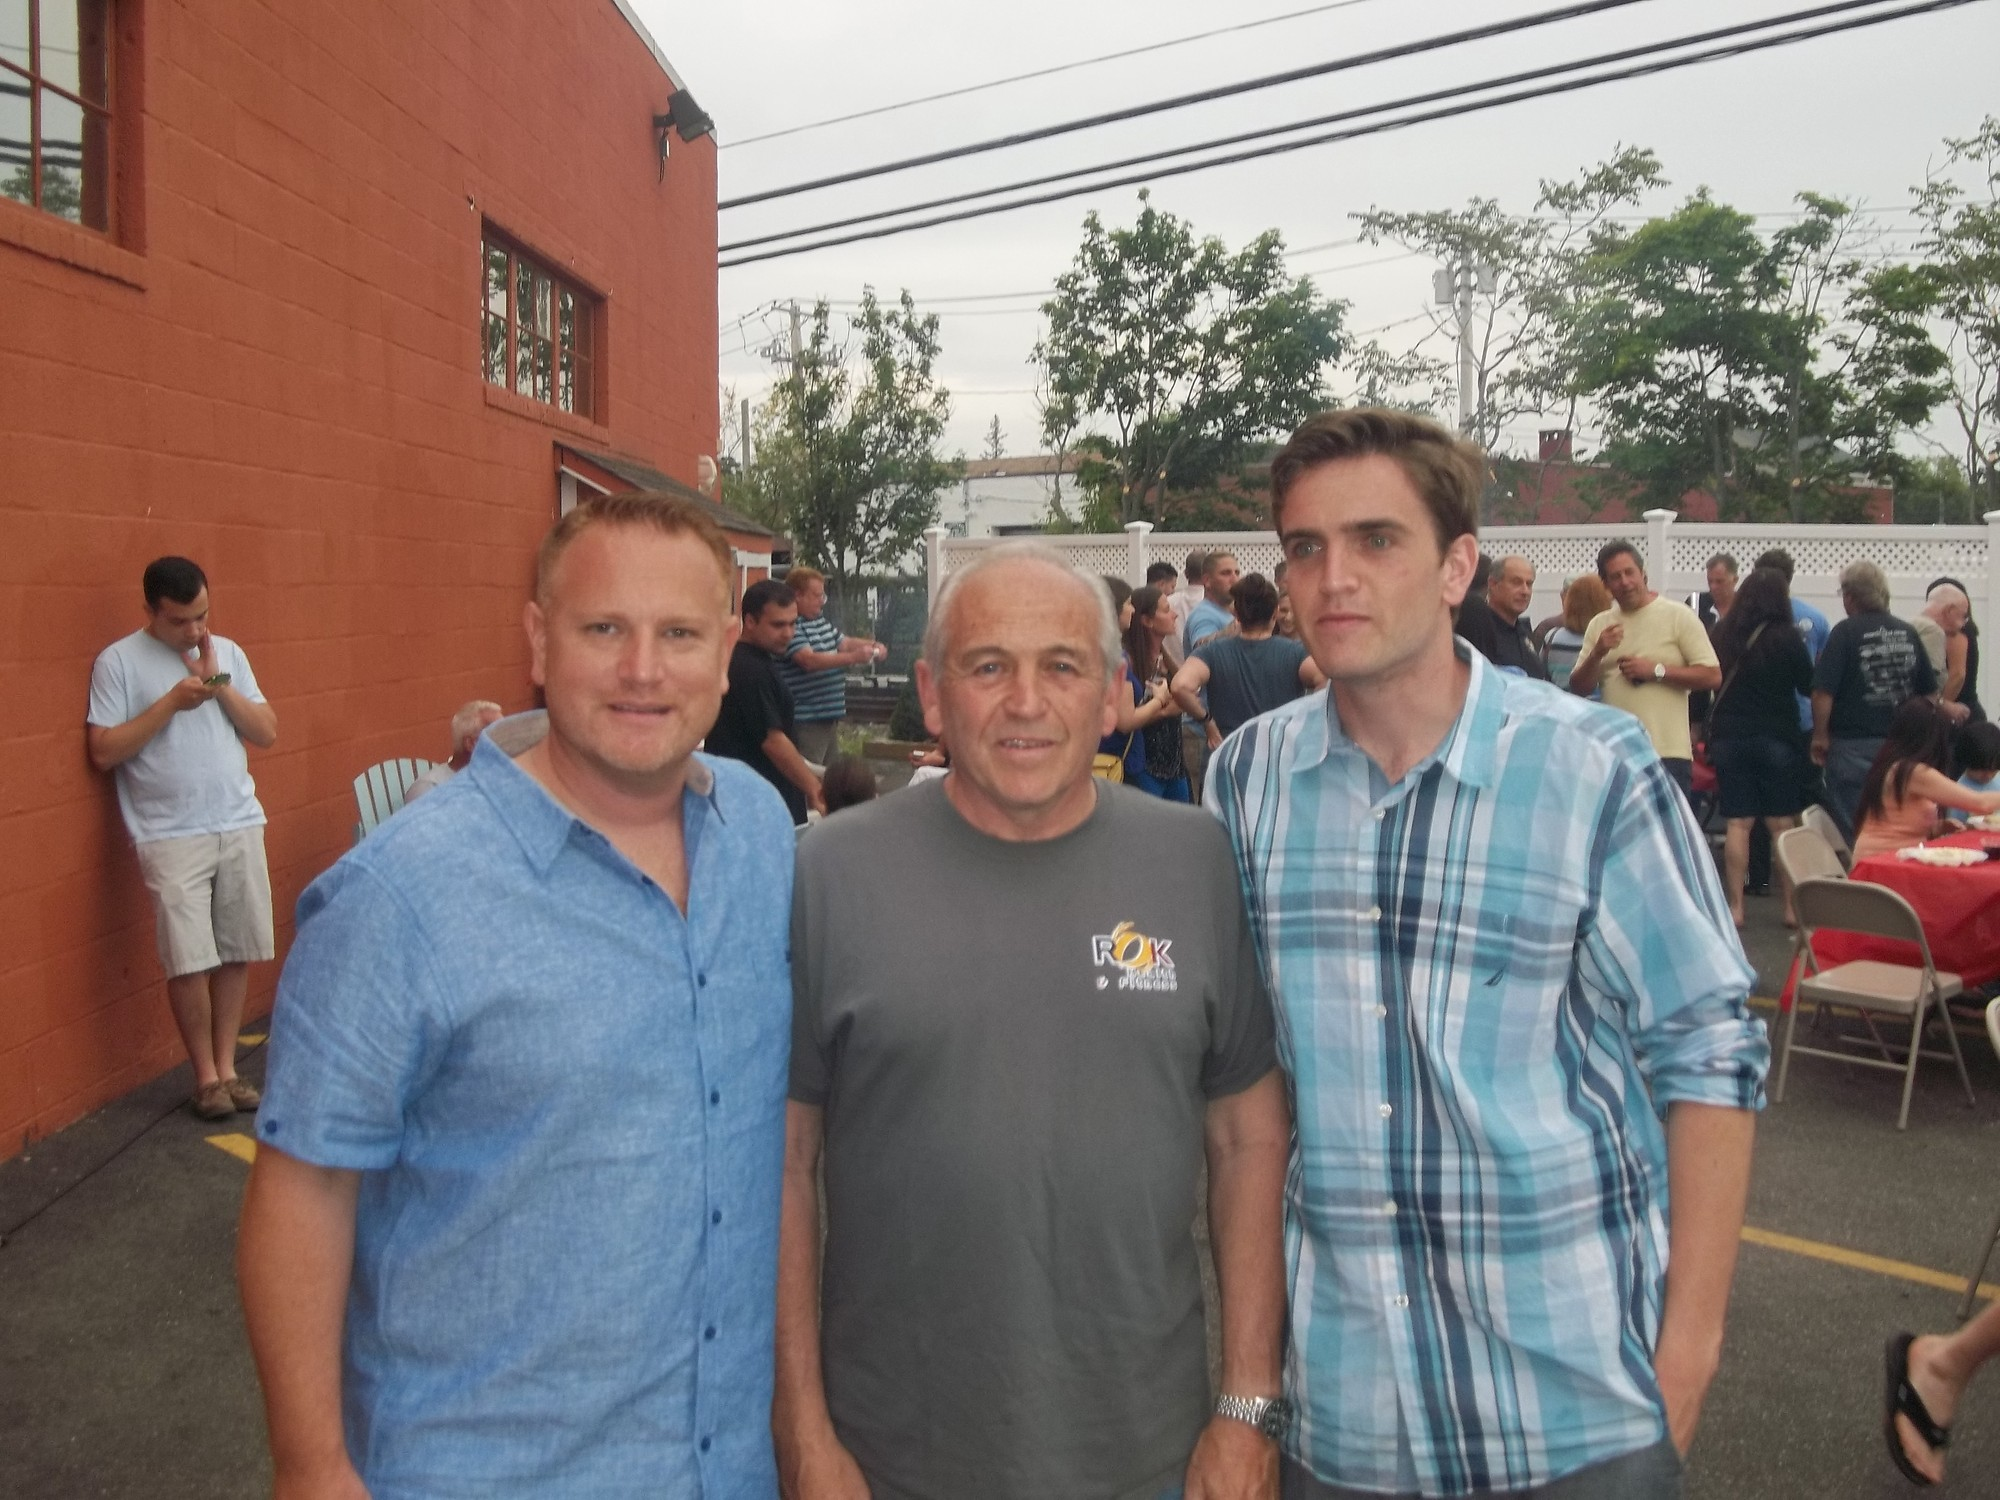 ROK Owners Michael Hawksby, left, Bob D'Urso, center, and Director of Operations Craig D'Urso plan two parties per year to show appreciation the members of ROK Health and Fitness in East Rockaway.